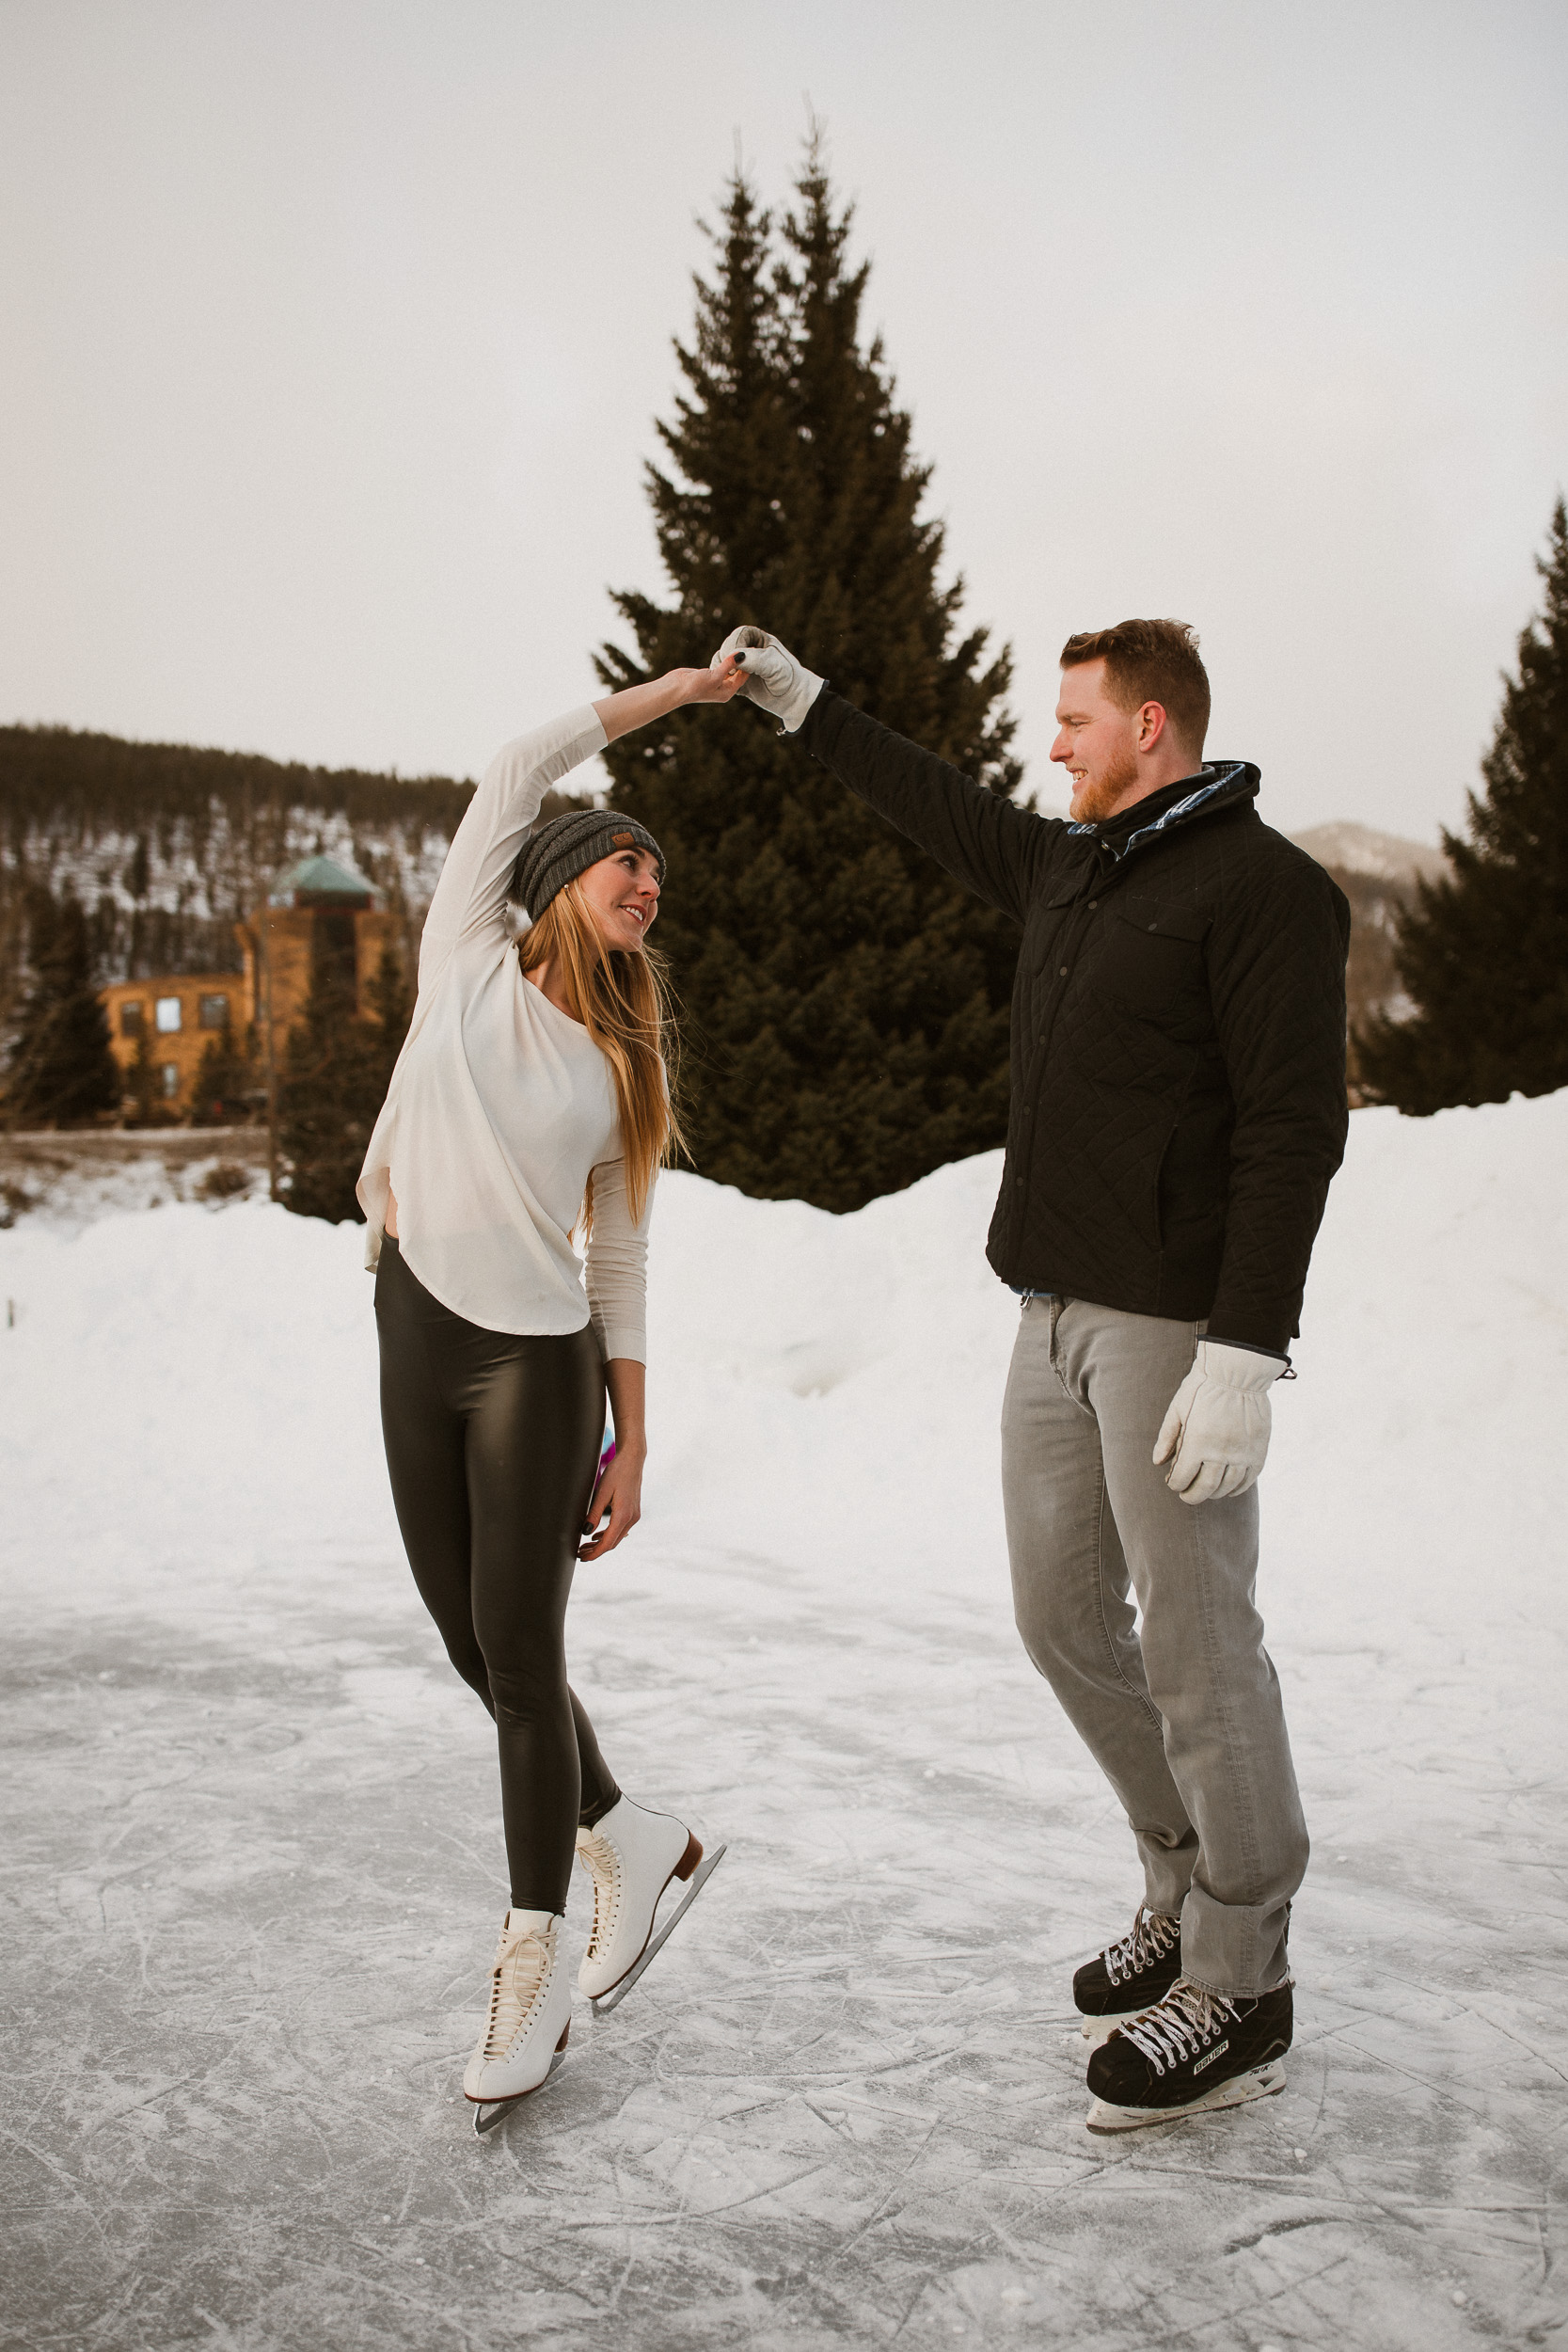 Keystone Lake Engagement Photography15.jpg